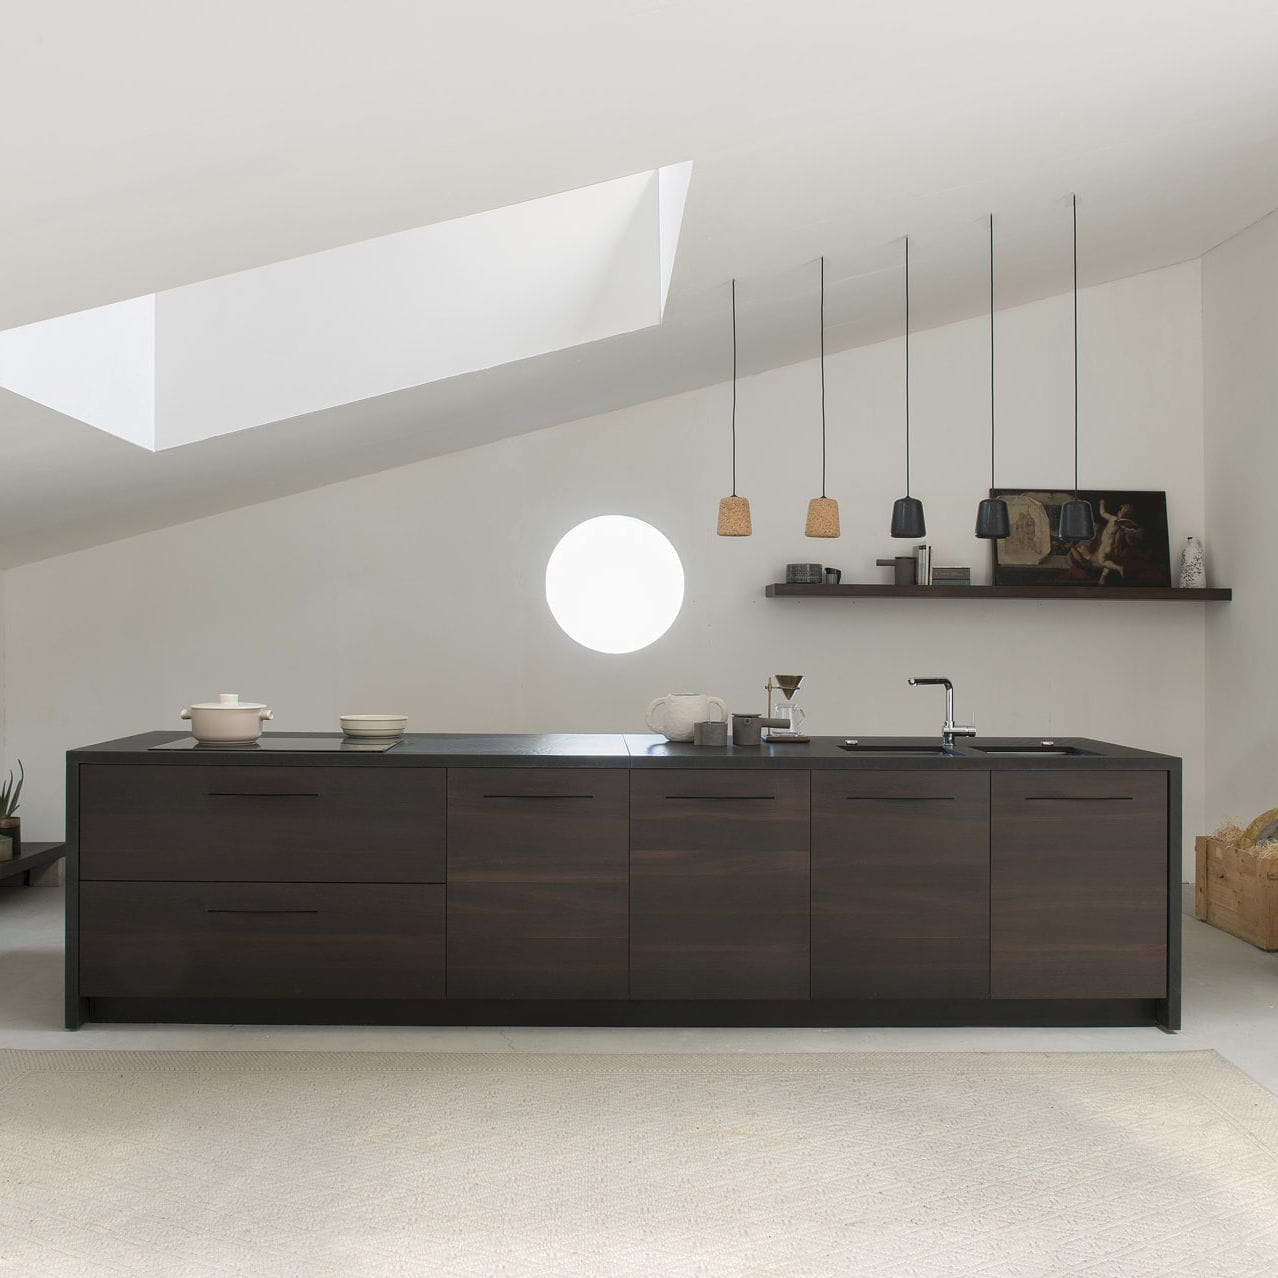 Schiffini Kuche Contemporary Kitchen Wooden Island By Alfredo Häberli